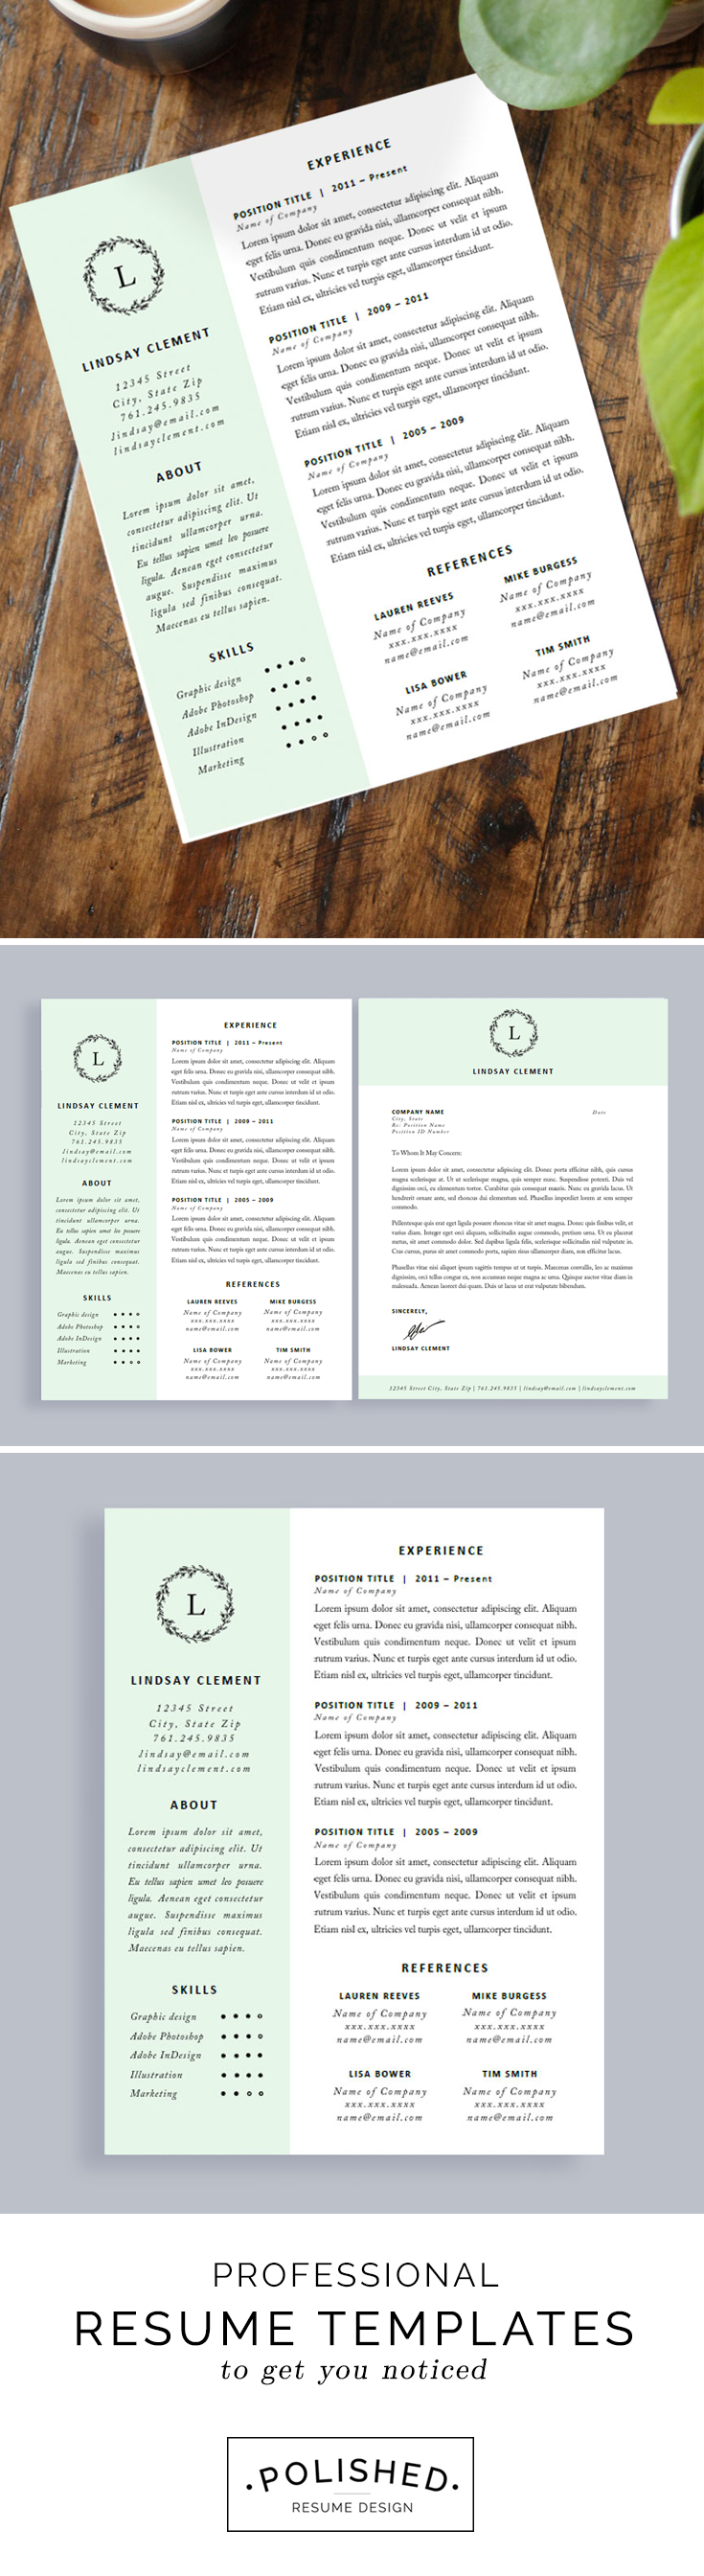 Professional resume templates for Microsoft Word Features 1 and 2 – Microsoft Resume Template